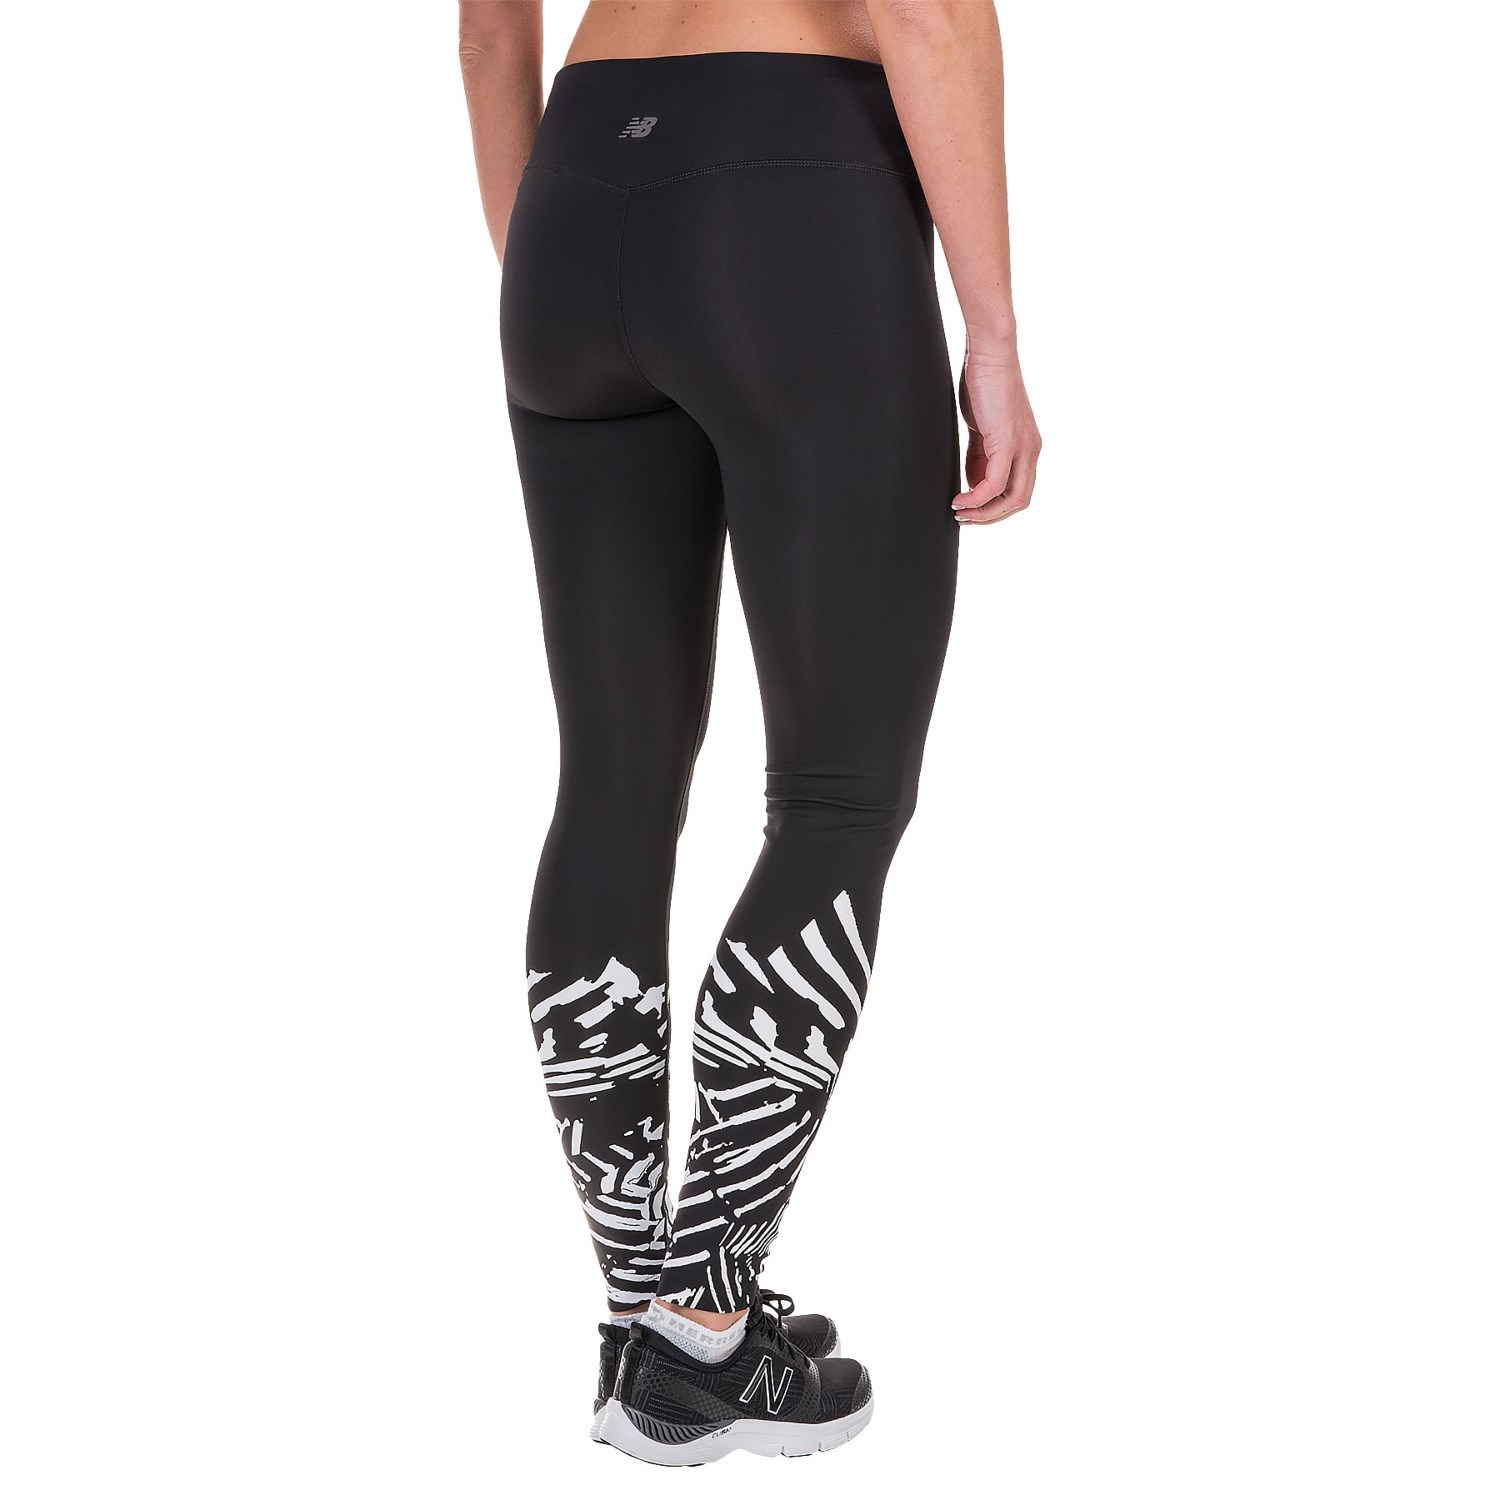 New Balance Printed Tights (For Women) - Save 50%